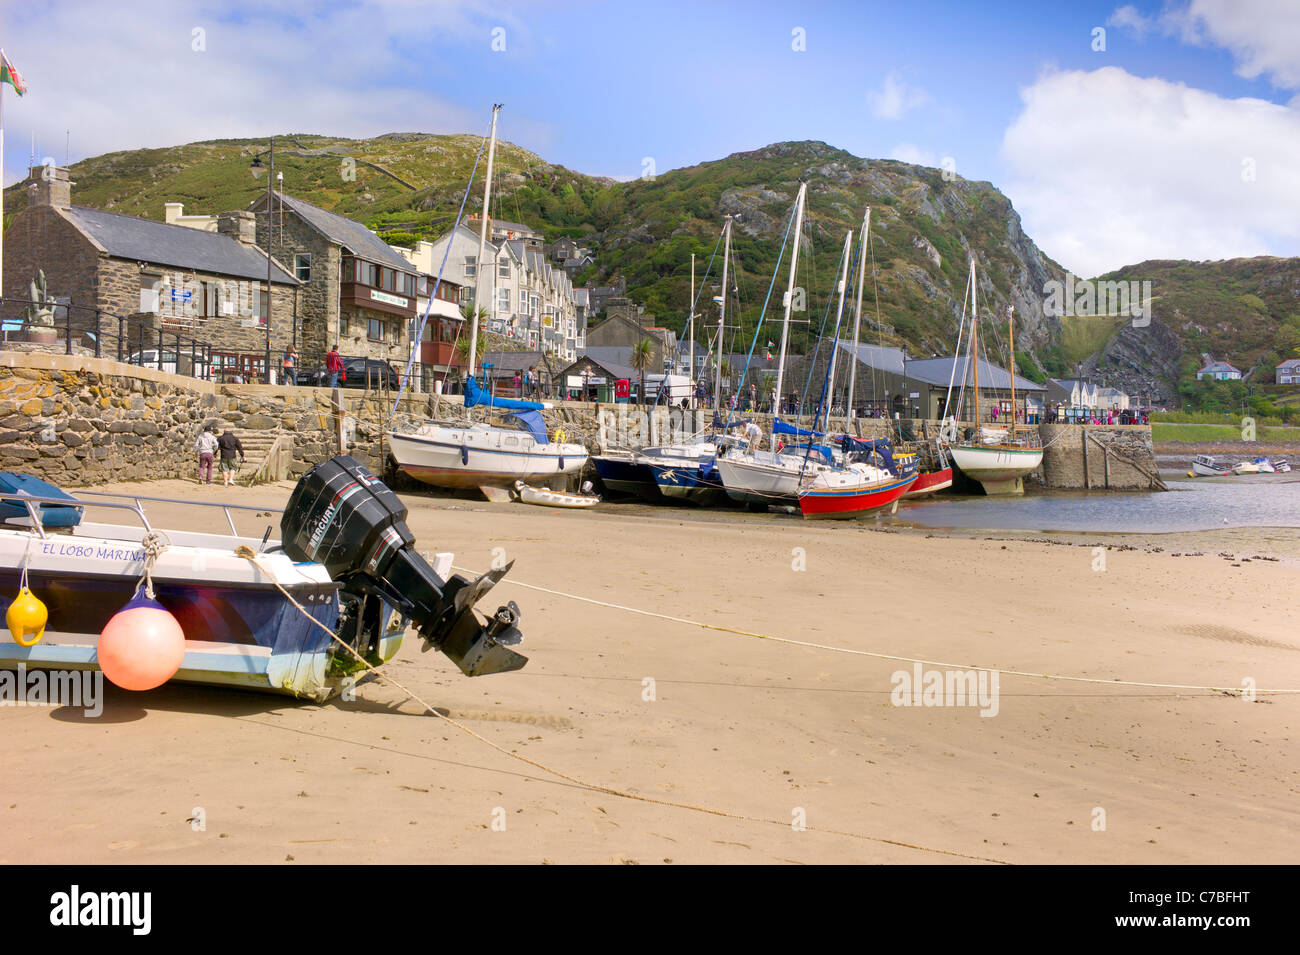 Low tide at Barmouth harour, colorful yachts roped to harbour wall, tourists, old buildings and rocky hillside in - Stock Image